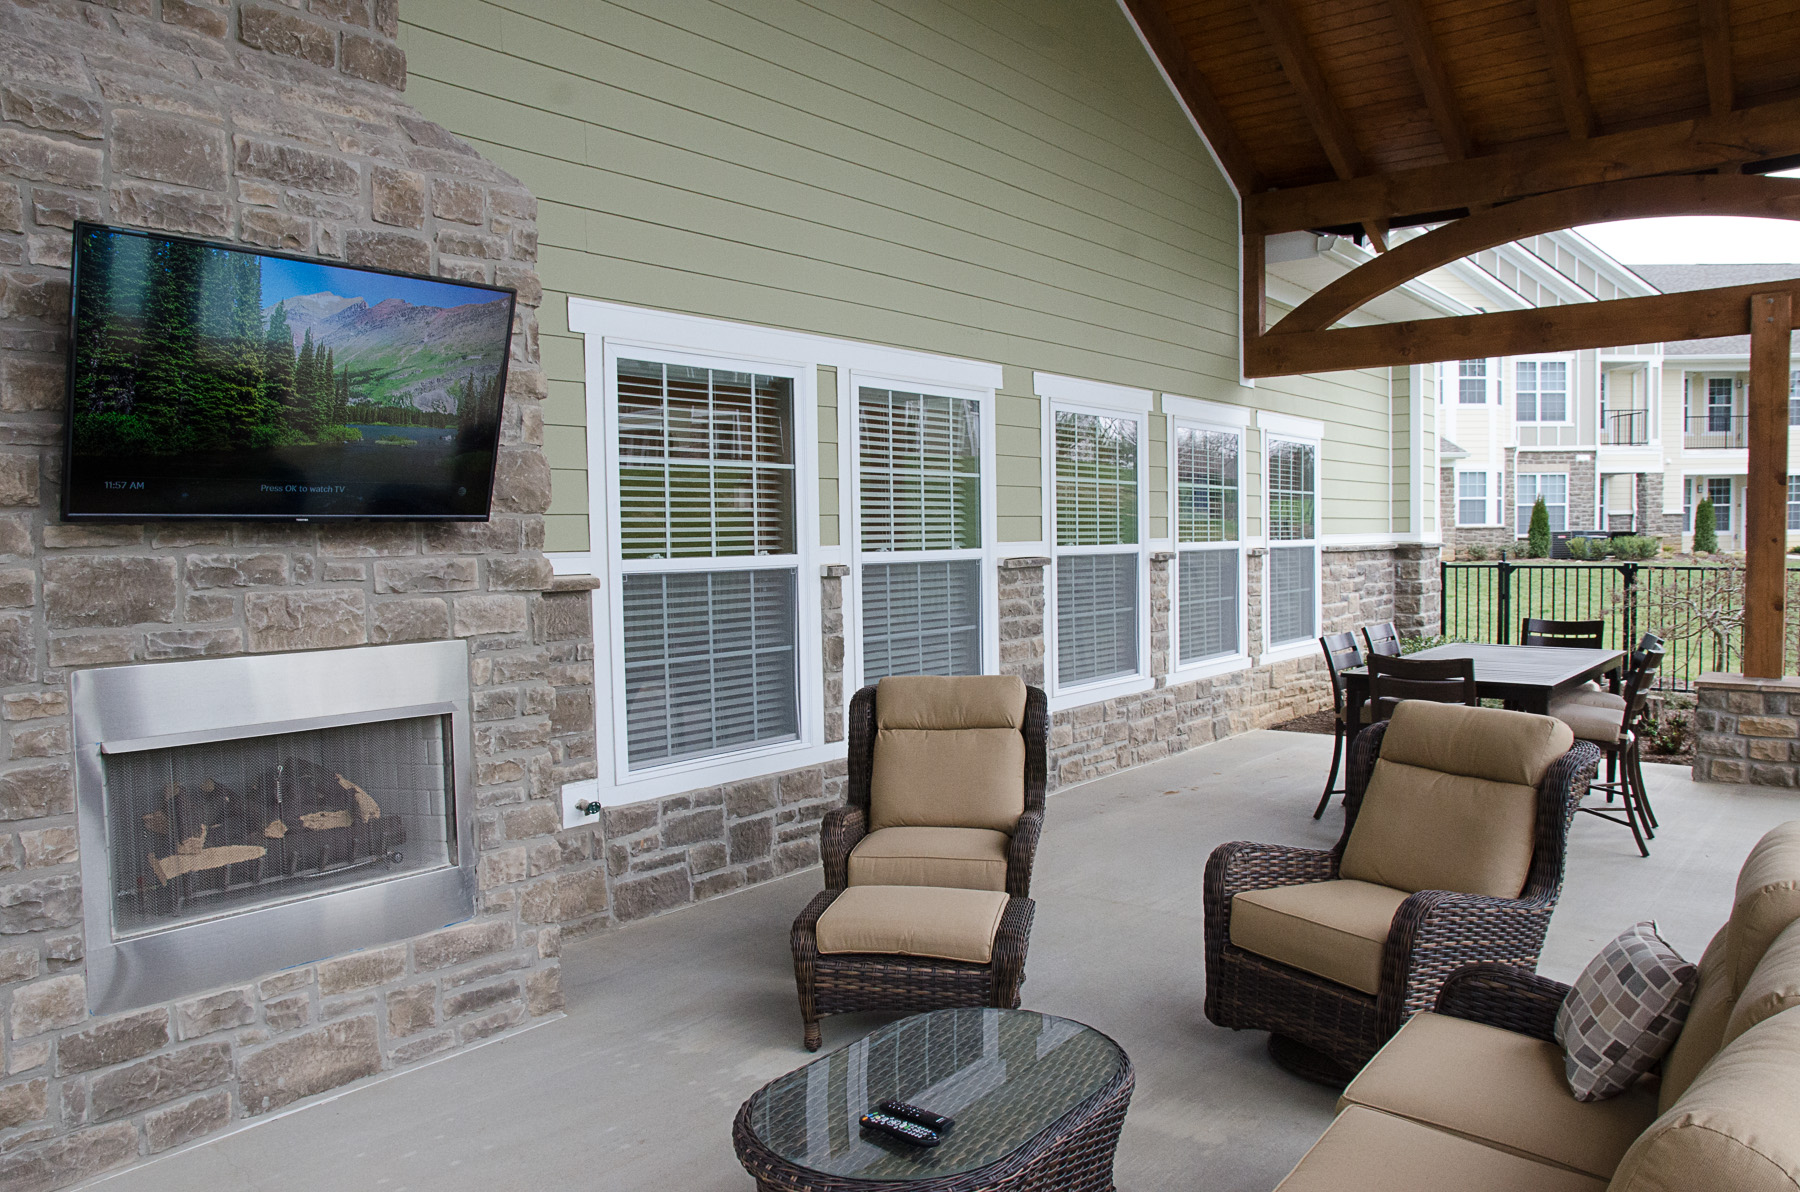 Outdoor TV area